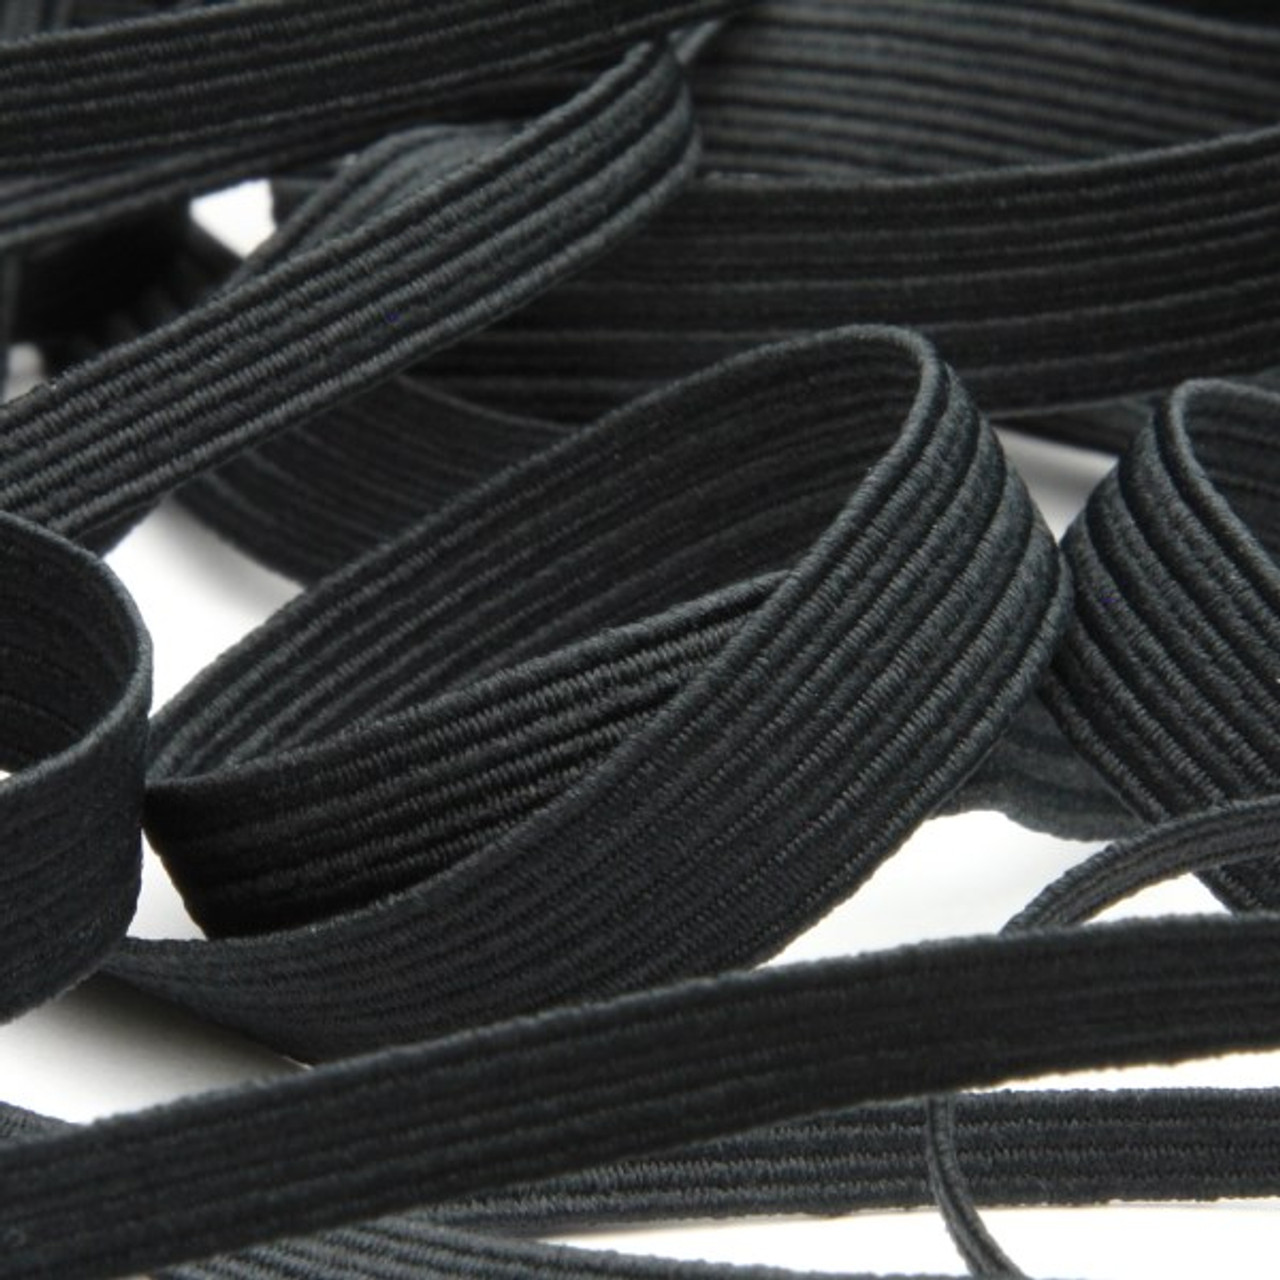 15 Yards Elastic Band For Diy Mask 3 16 5mm Us Stock Ready